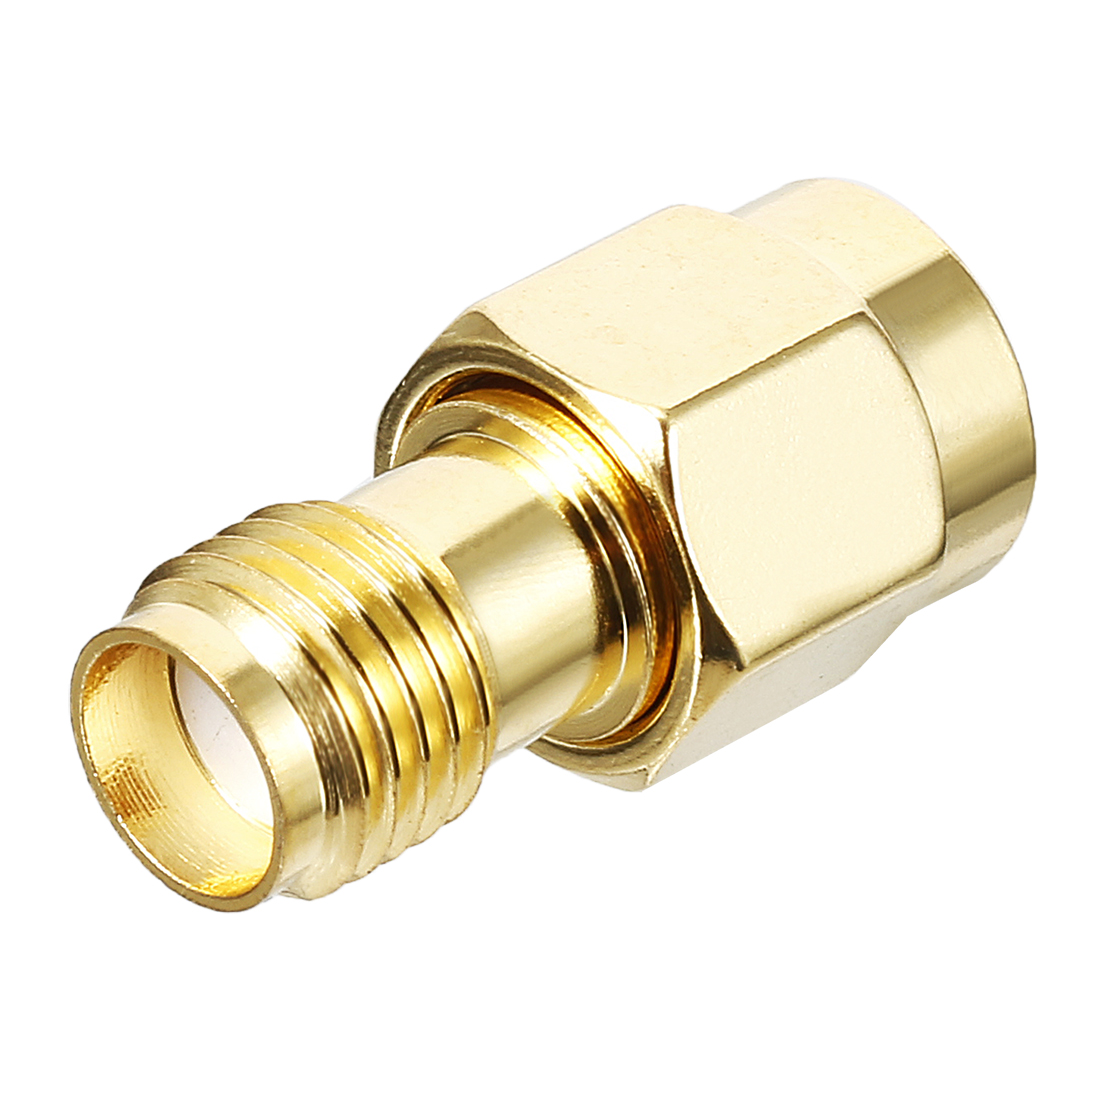 Gold Tone RP-SMA Male to SMA Female Jack RF Coaxial Adapter Connector 1000V